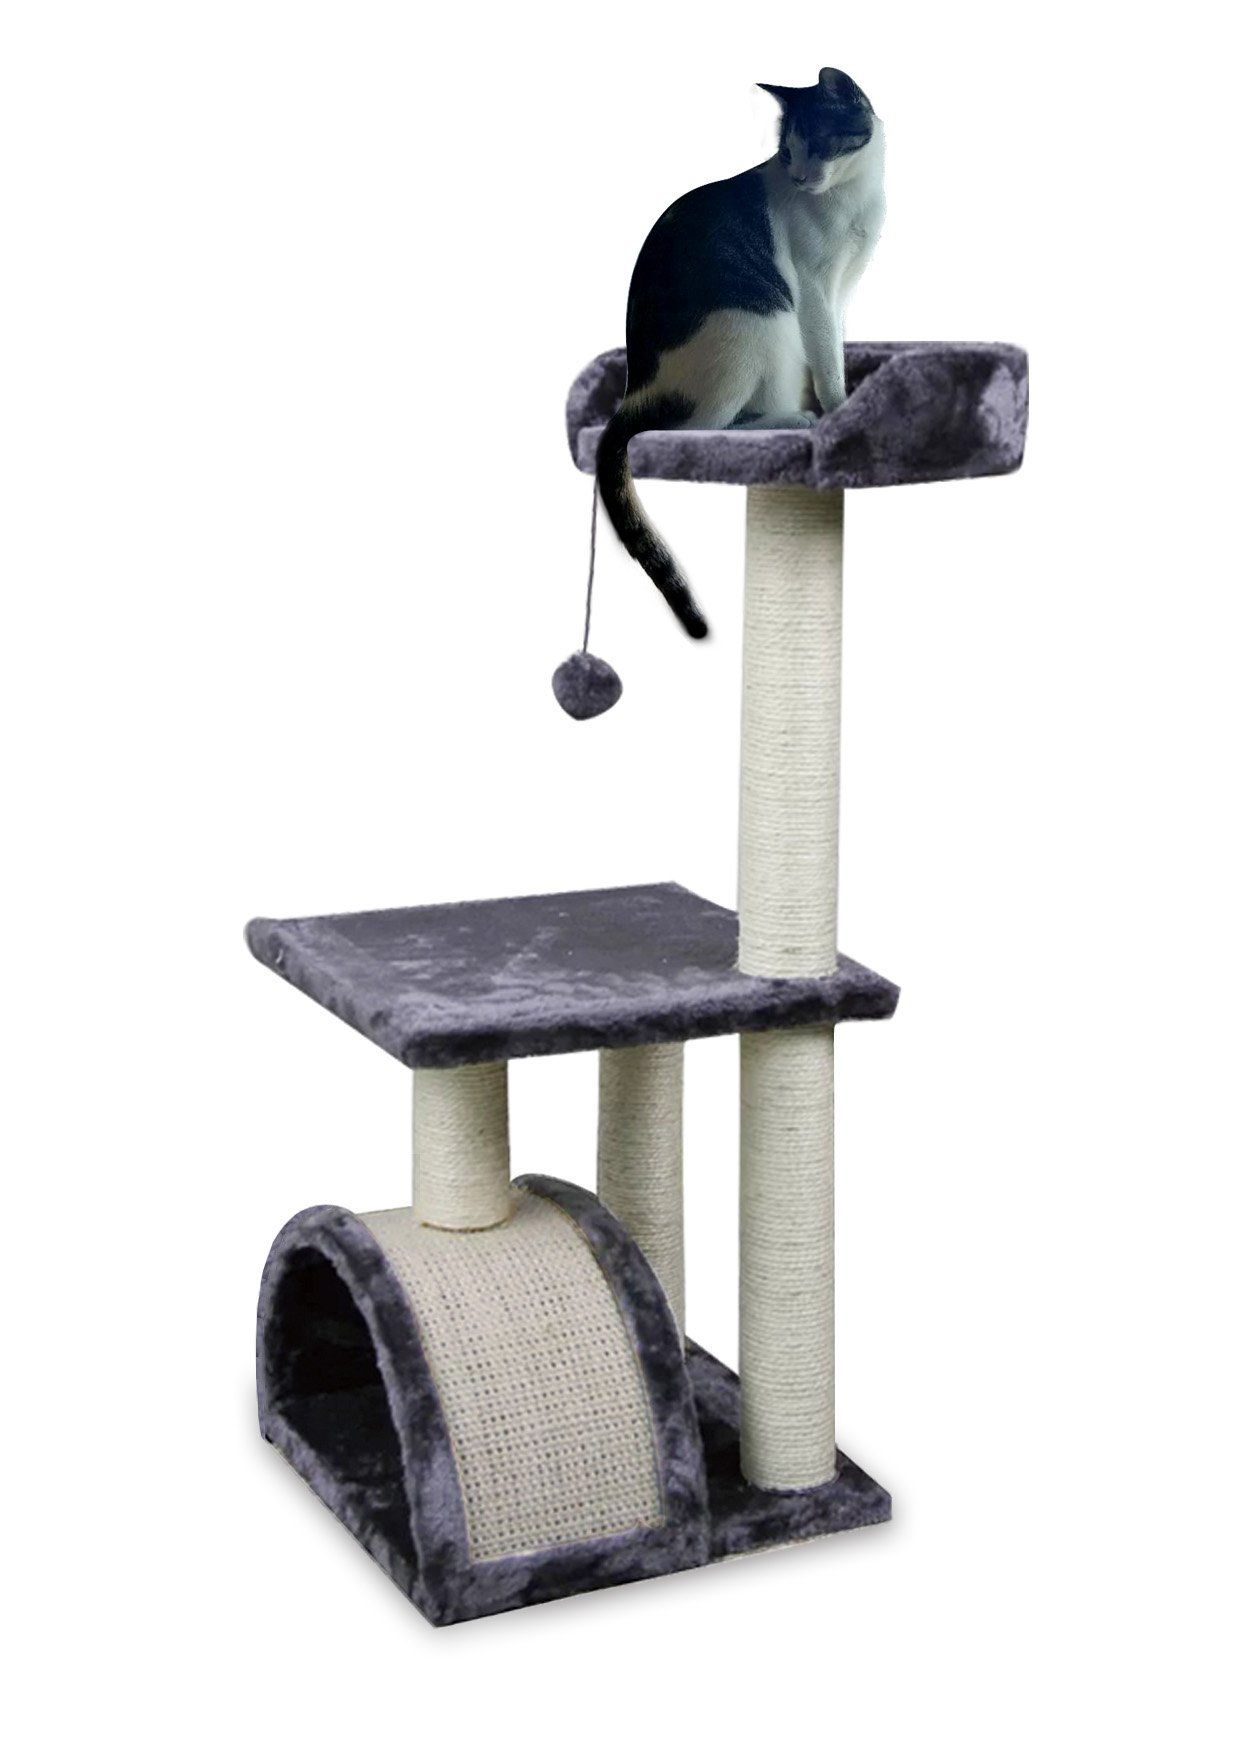 Roypet 32'' Cat Tree with Scratching Pad and Perch, Grey by Roypet